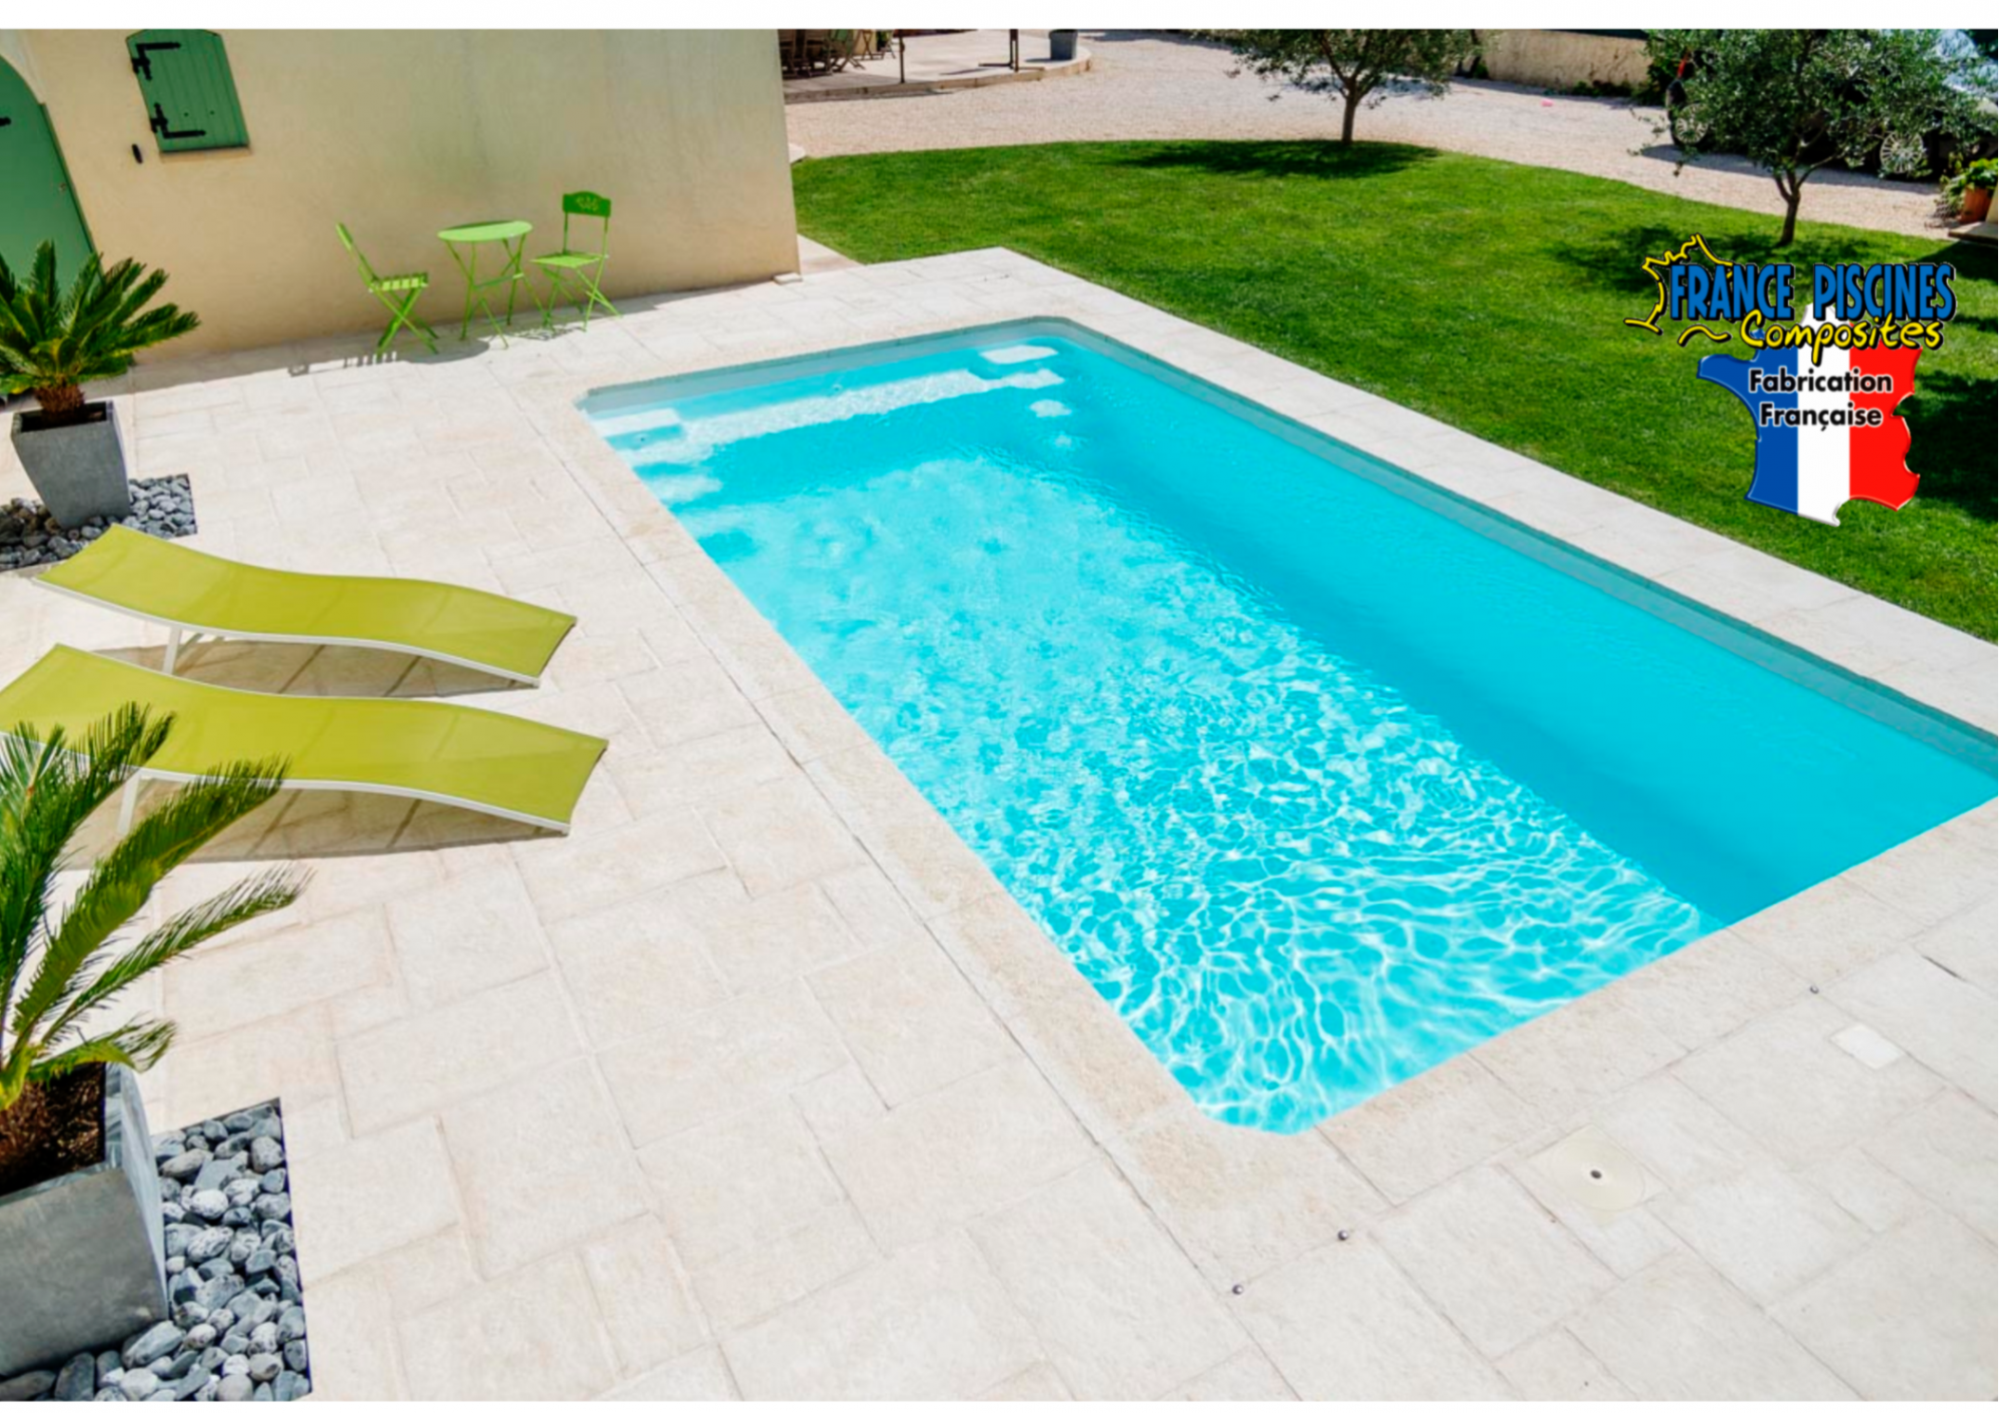 Piscine coque polyester moins de 10m2 istres france for Coque piscine polyester